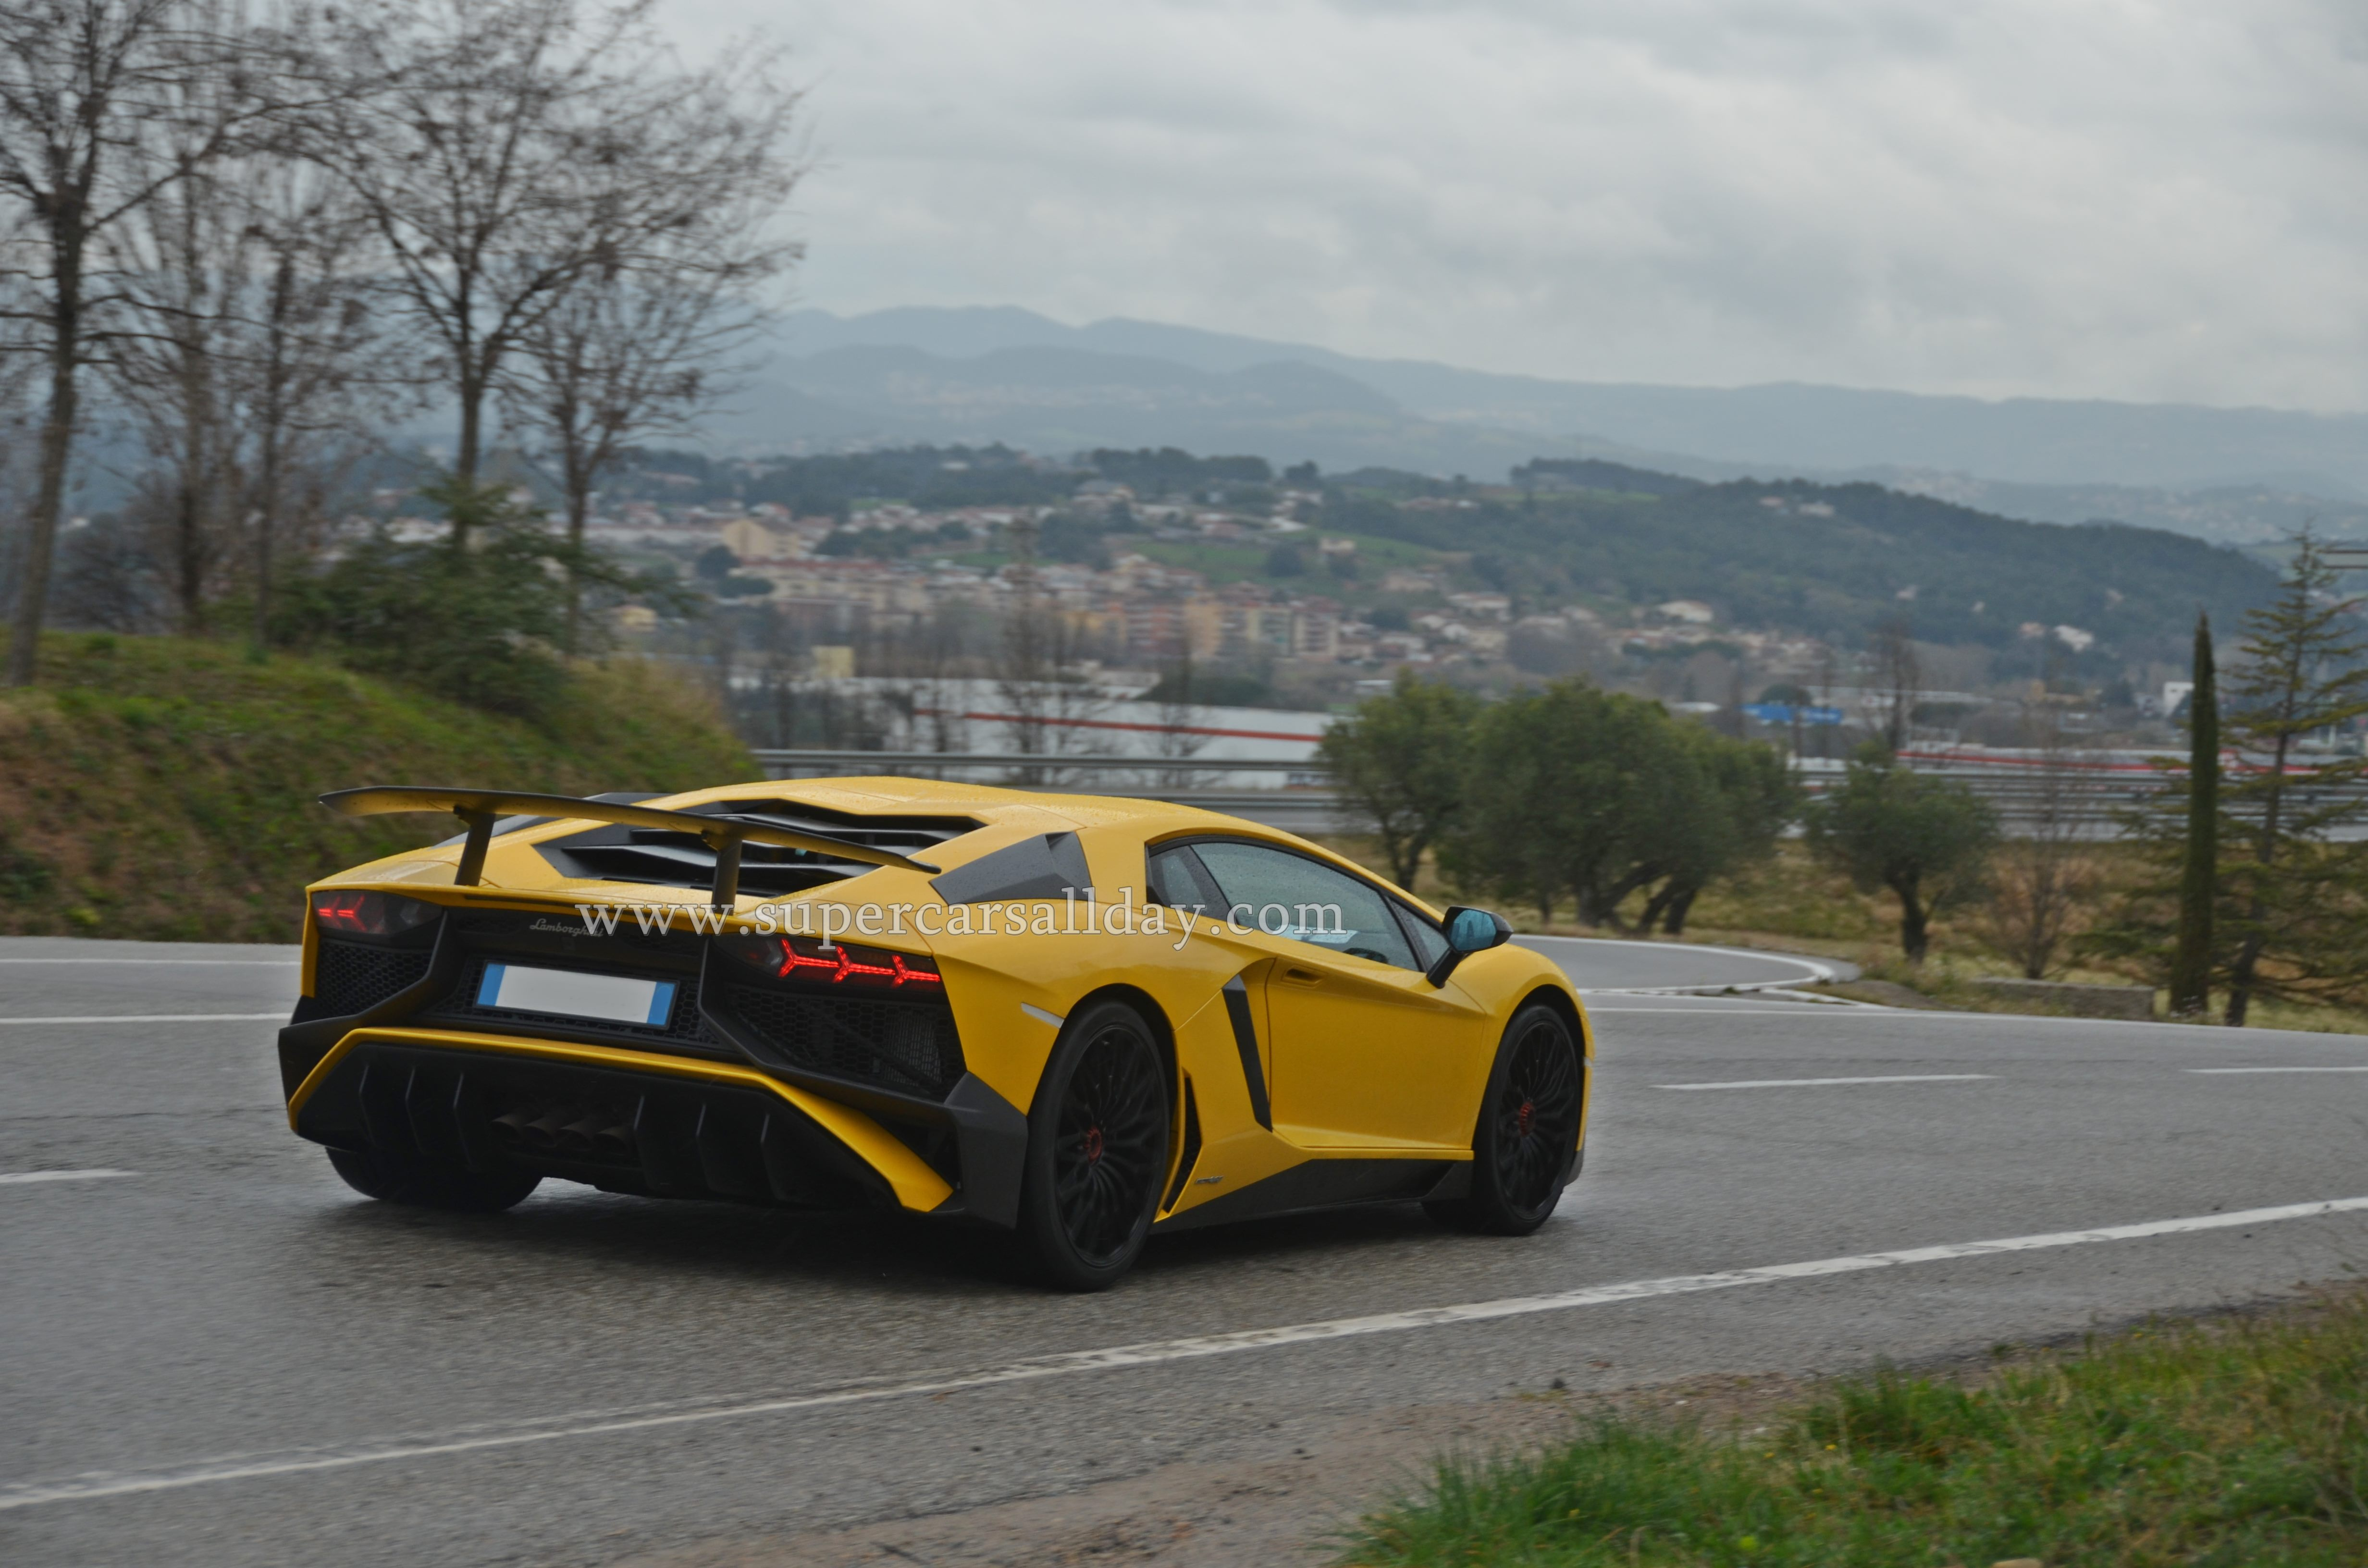 Lamborghini Aventador Lp750 4 Sv Spotted On The Road